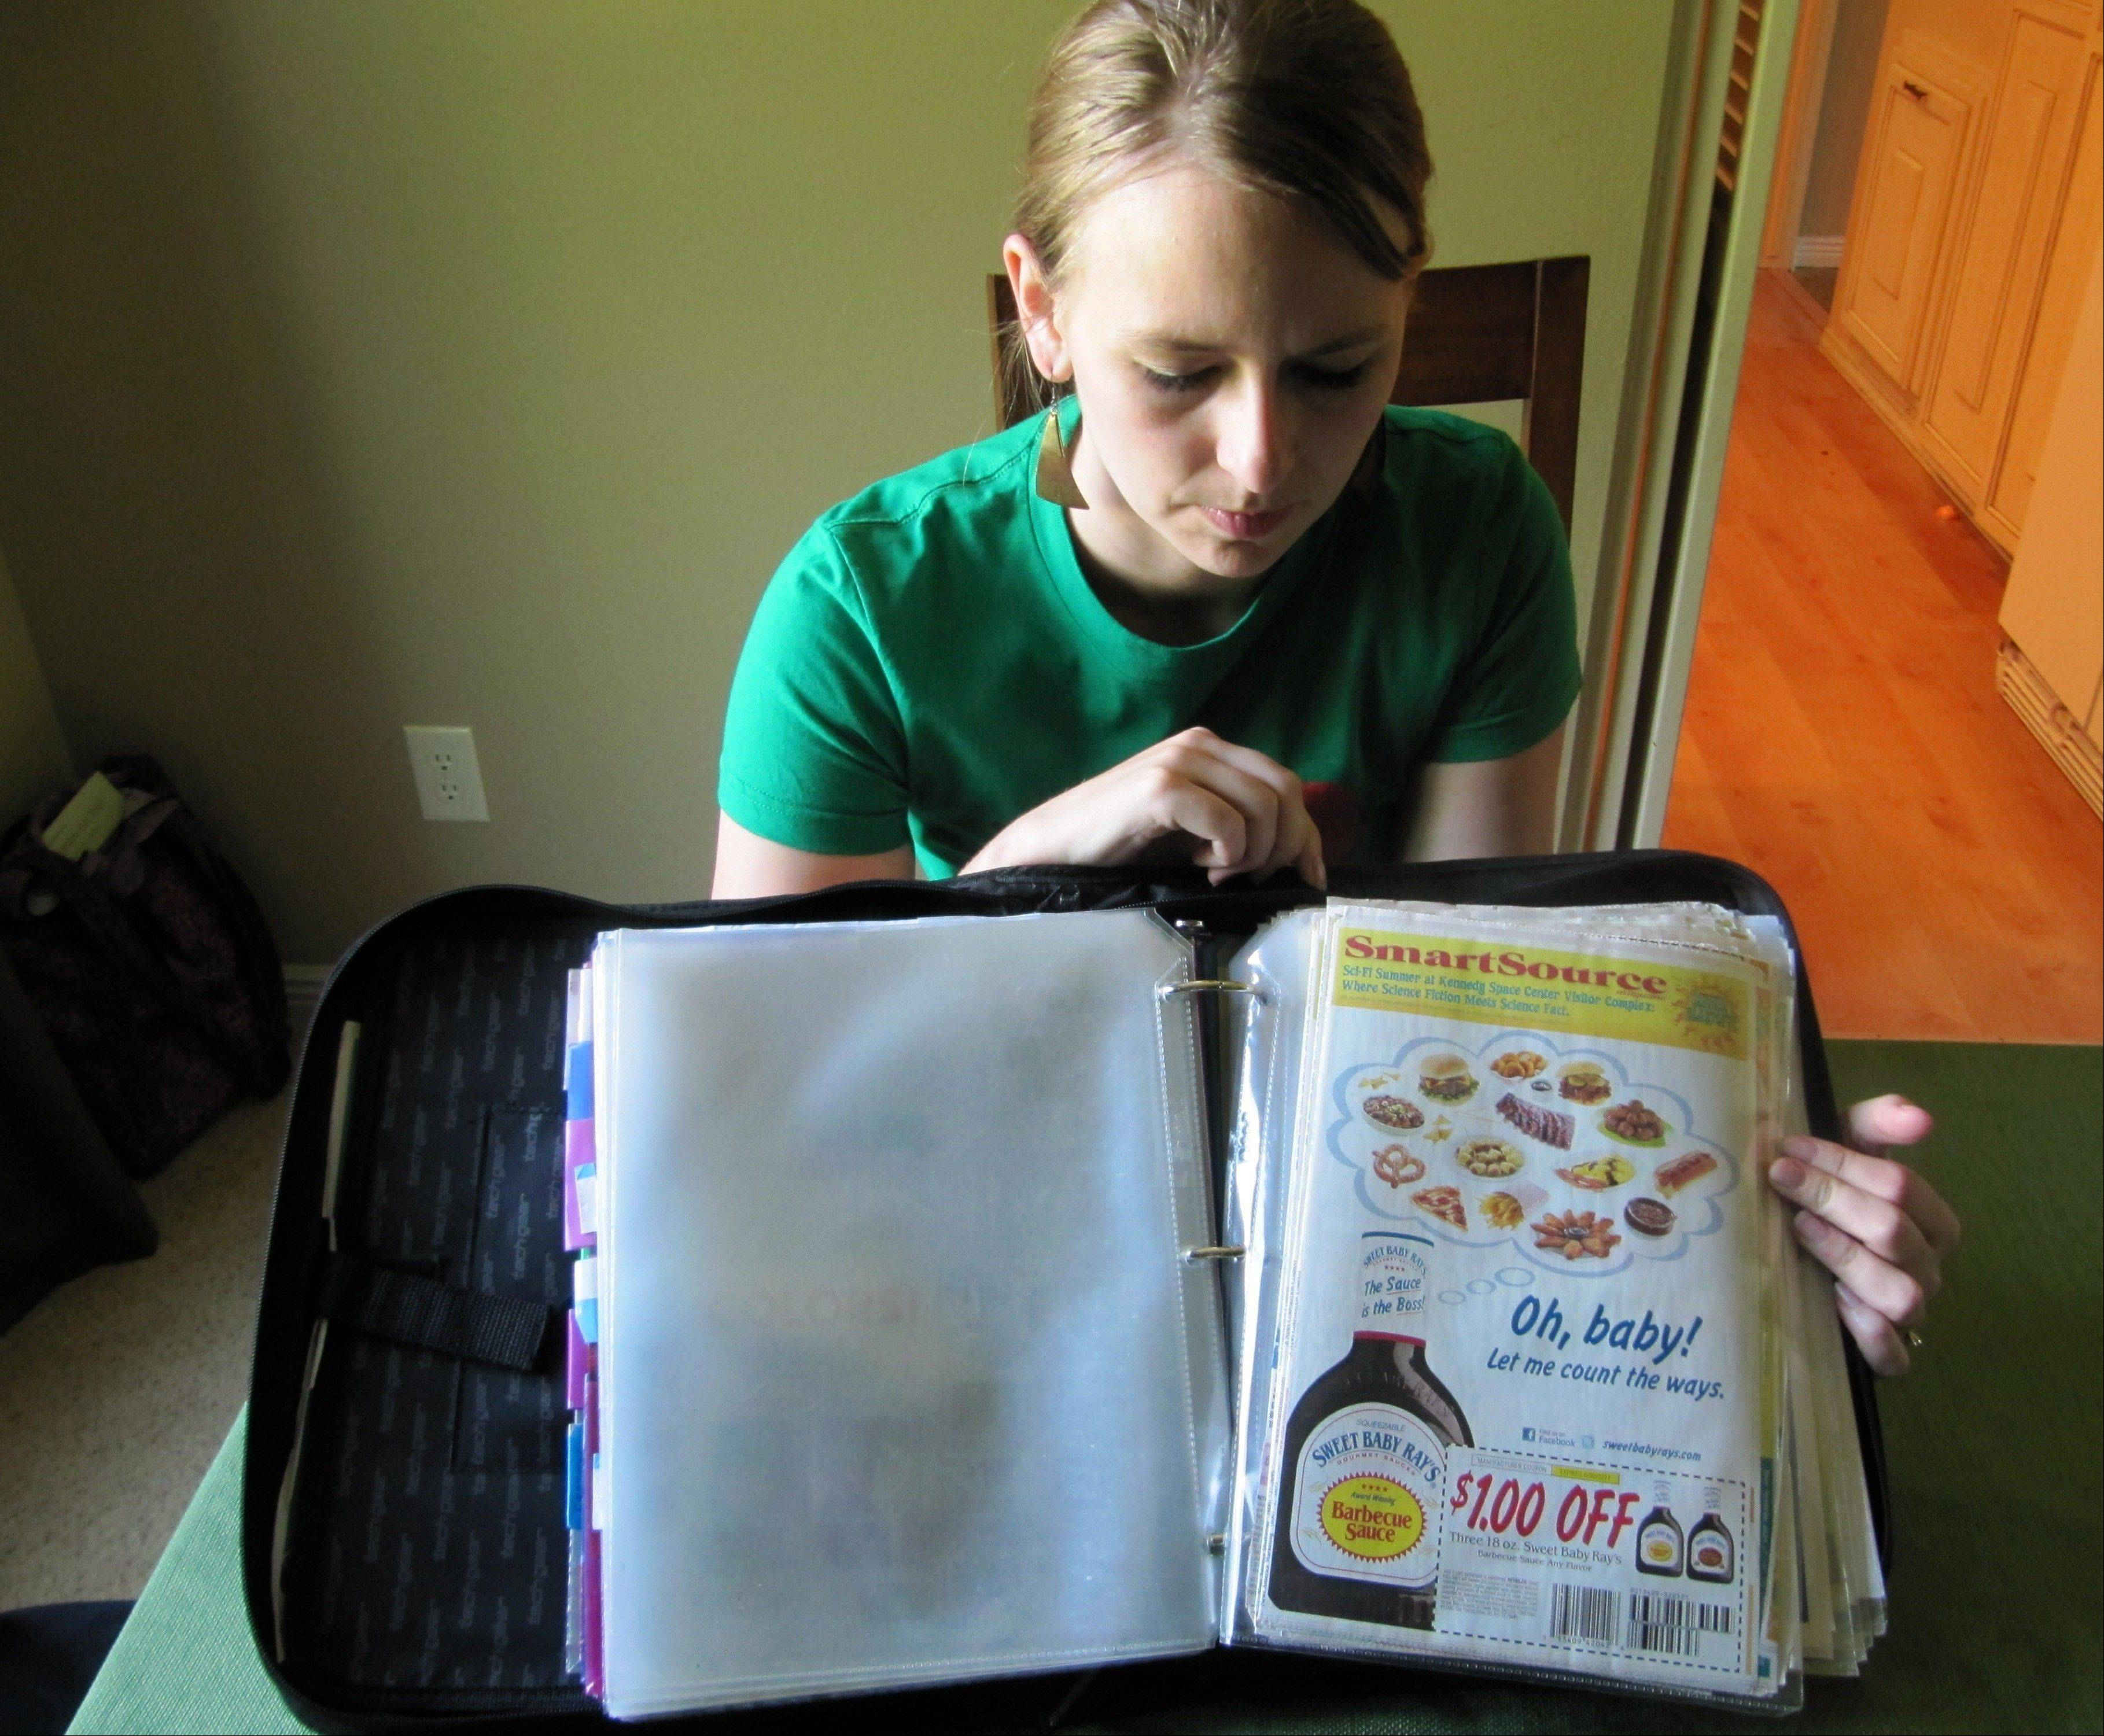 Monica Knight, a dental hygienist and mother of two, shows her coupon binder at her home in Boise, Idaho. Knight used to spend spent $600 a month on groceries. Thanks to extreme couponing she's down to $100 to $150 a month.